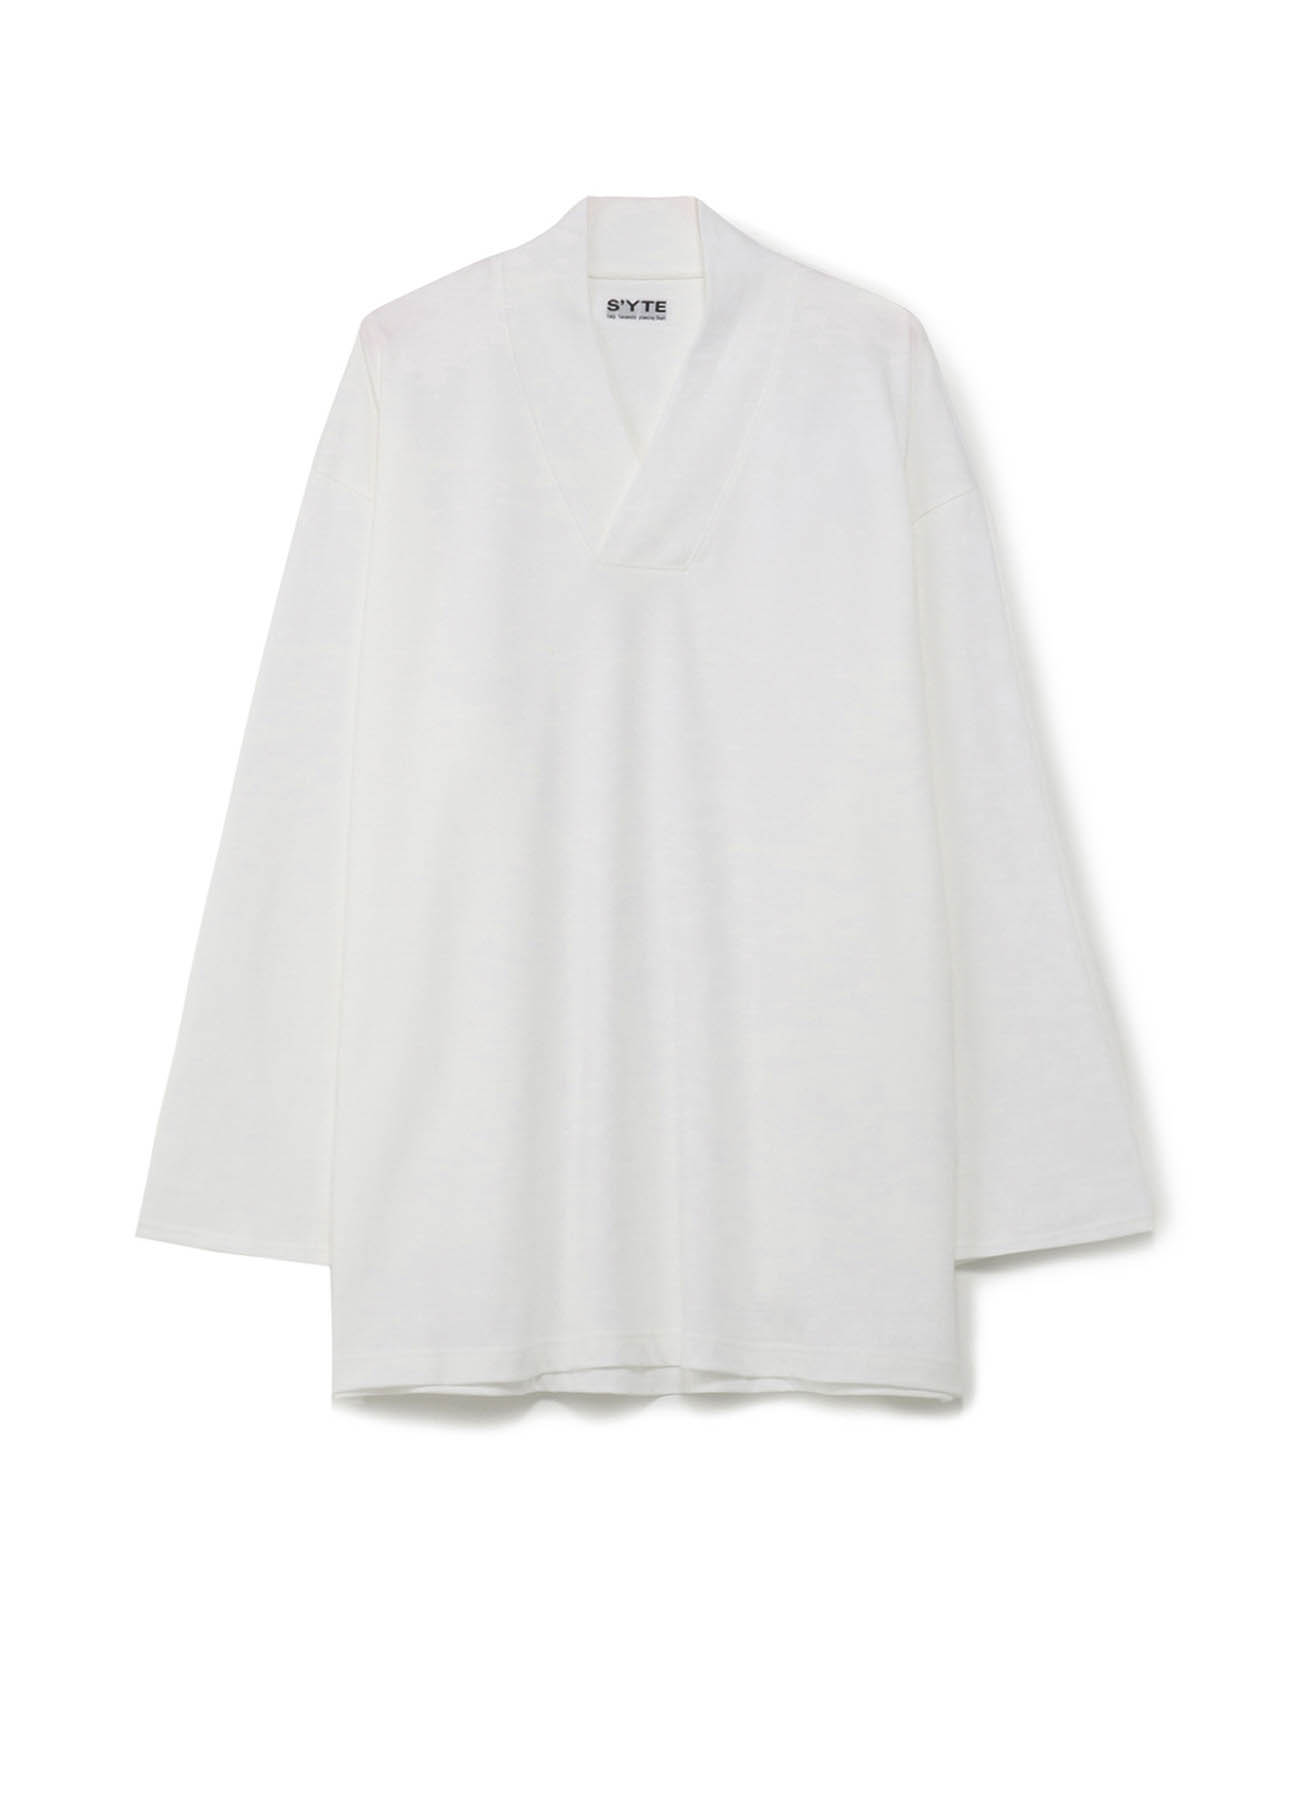 40/2 Cotton Jersey Kimono Layering Vneck 6minute Sleeve Pull owner